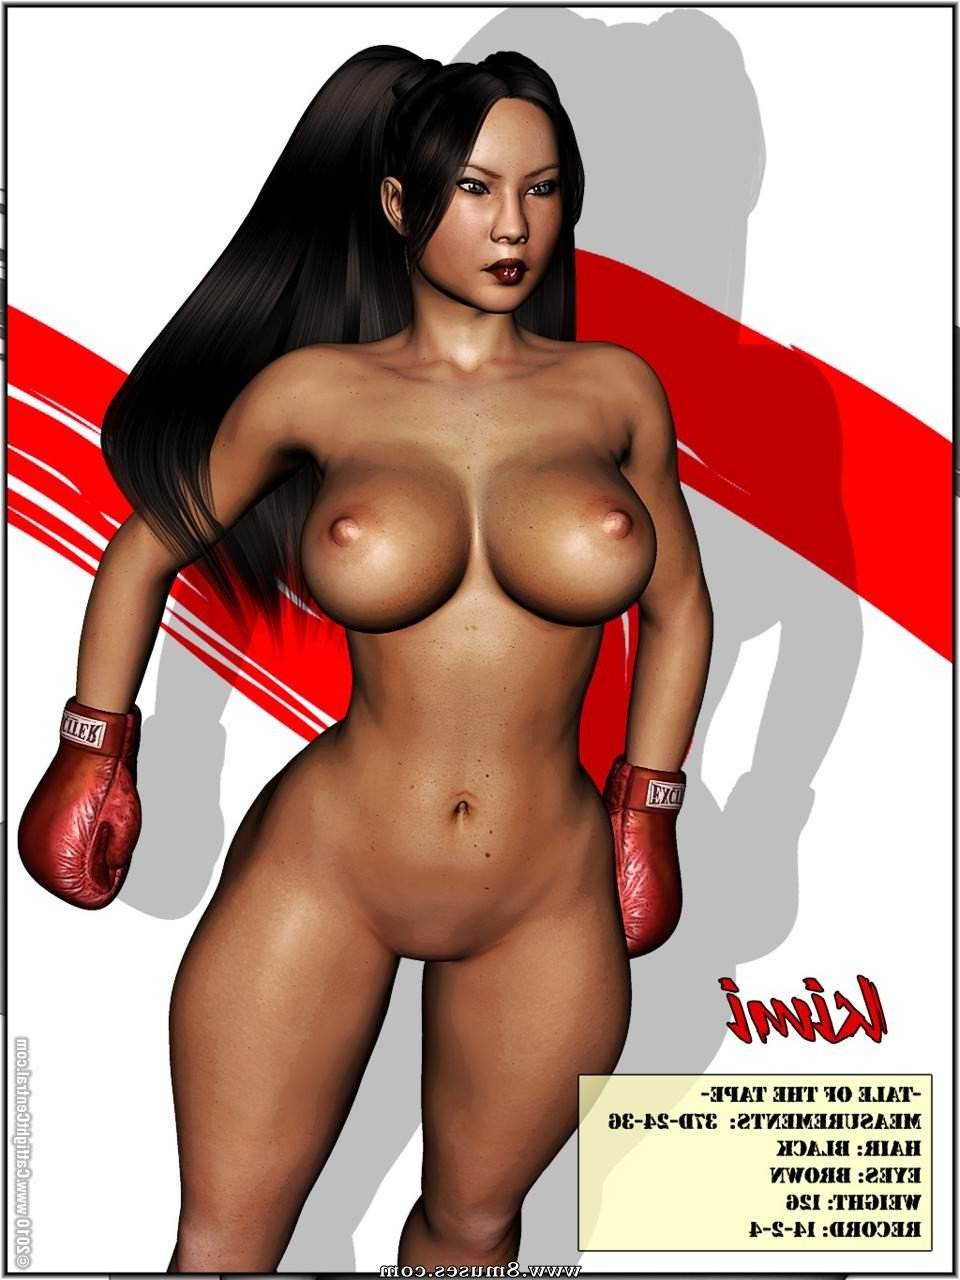 Central-Comics/Catfight-Central/Foxy-Boxing-Kimi-vs_-Nariko Foxy_Boxing_-_Kimi_vs_Nariko__8muses_-_Sex_and_Porn_Comics_3.jpg